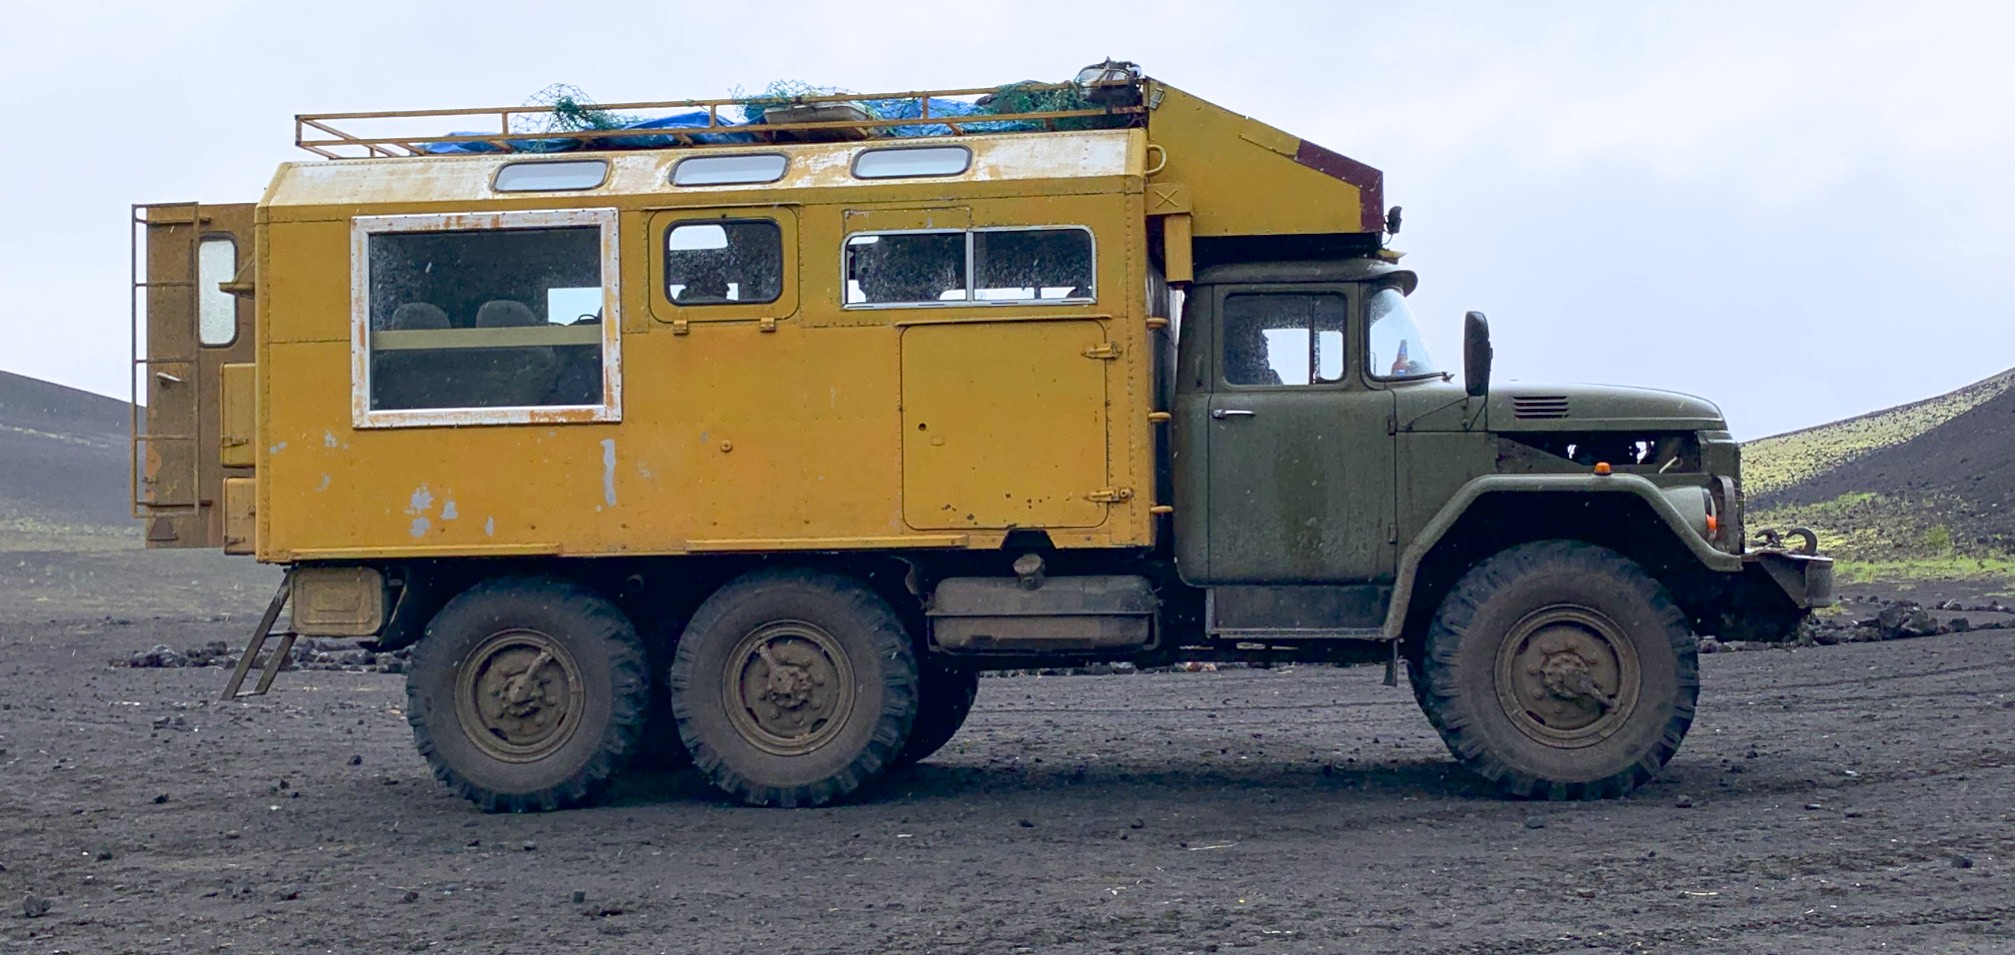 "Old Soviet ""Zil"" adapted to overland travel. According to the driver, there are not many original parts from the old truck left on it."